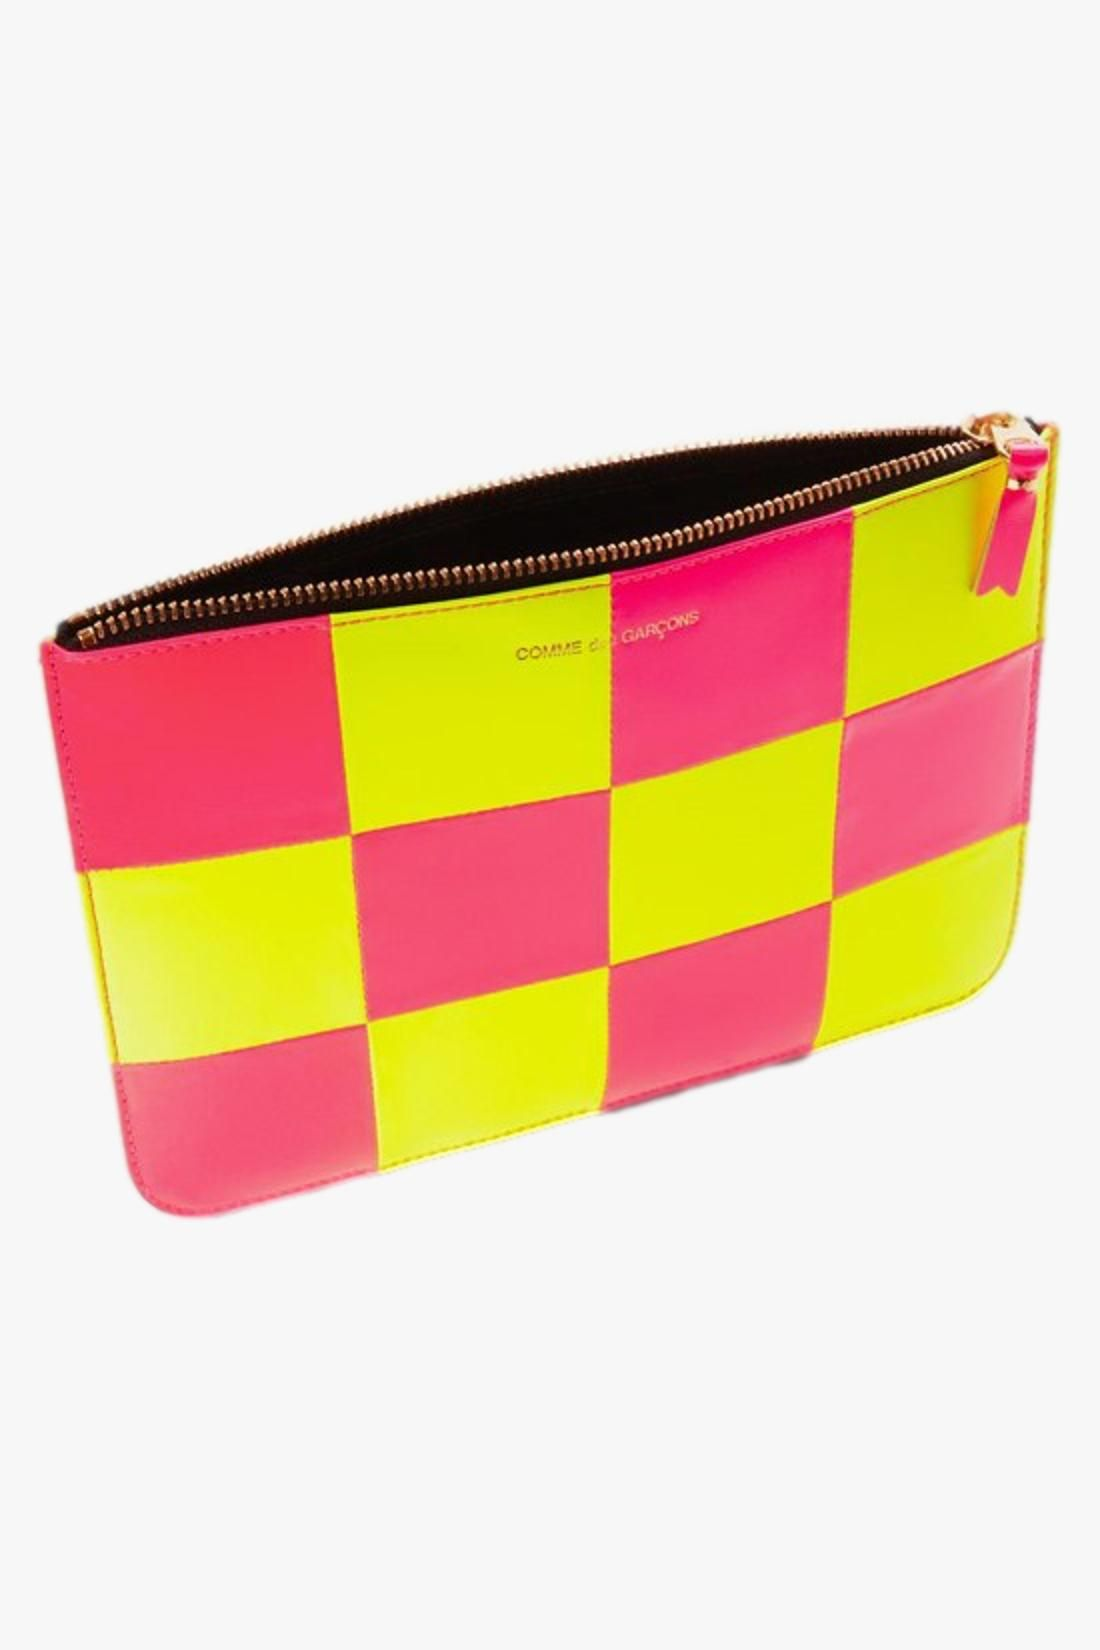 COMME DES GARÇONS WALLETS / Cdg wallet fluo squares Yellow pink